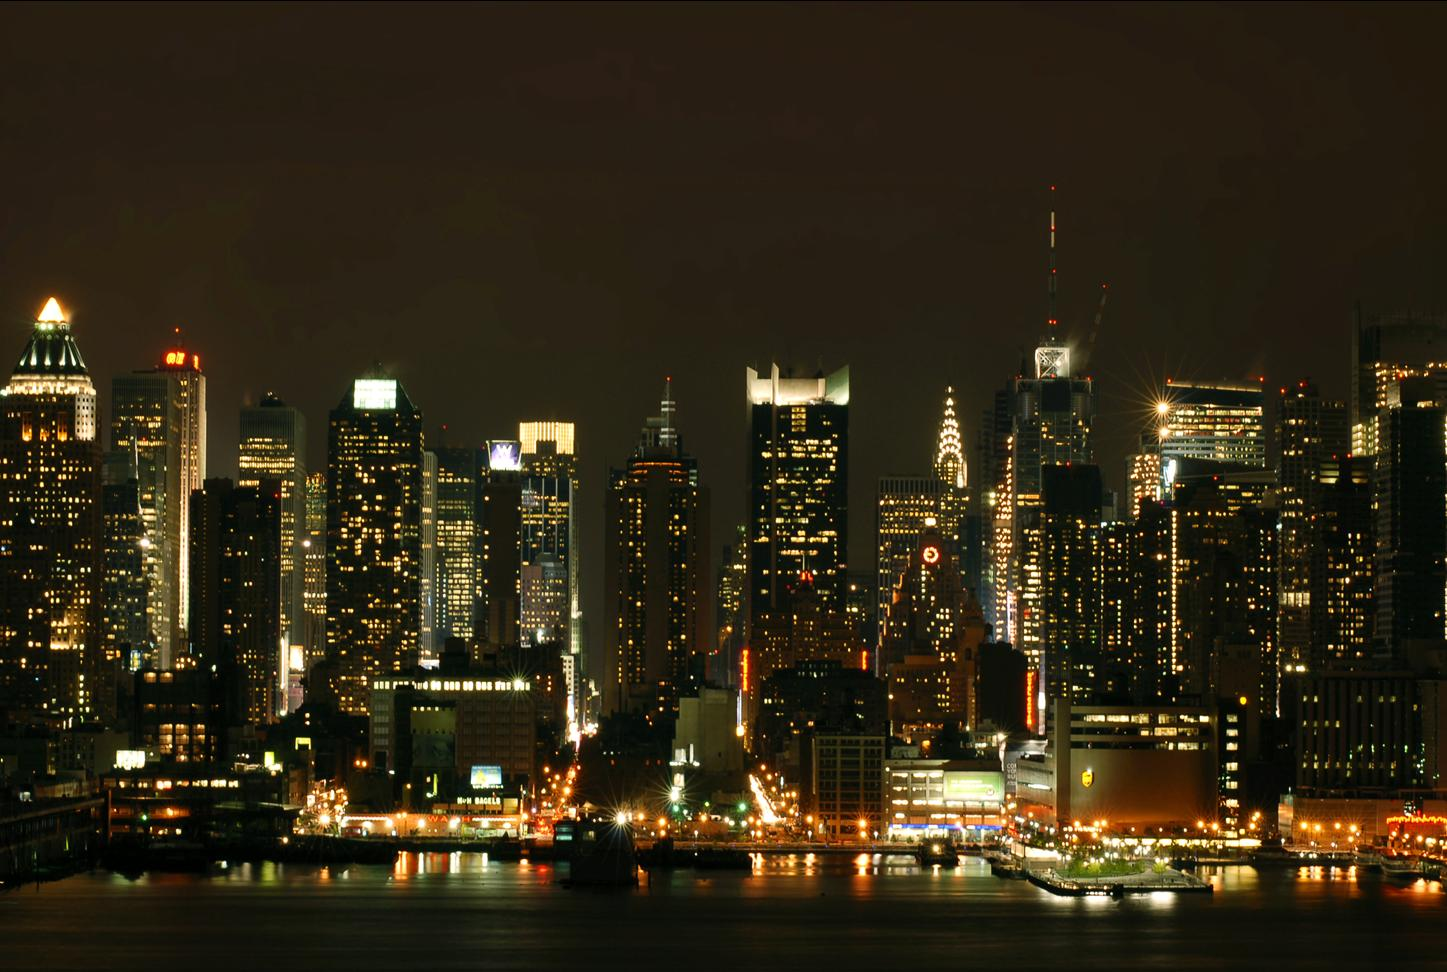 Best places for night Photography in New York City - Thomas Farina Manhattan photos at night